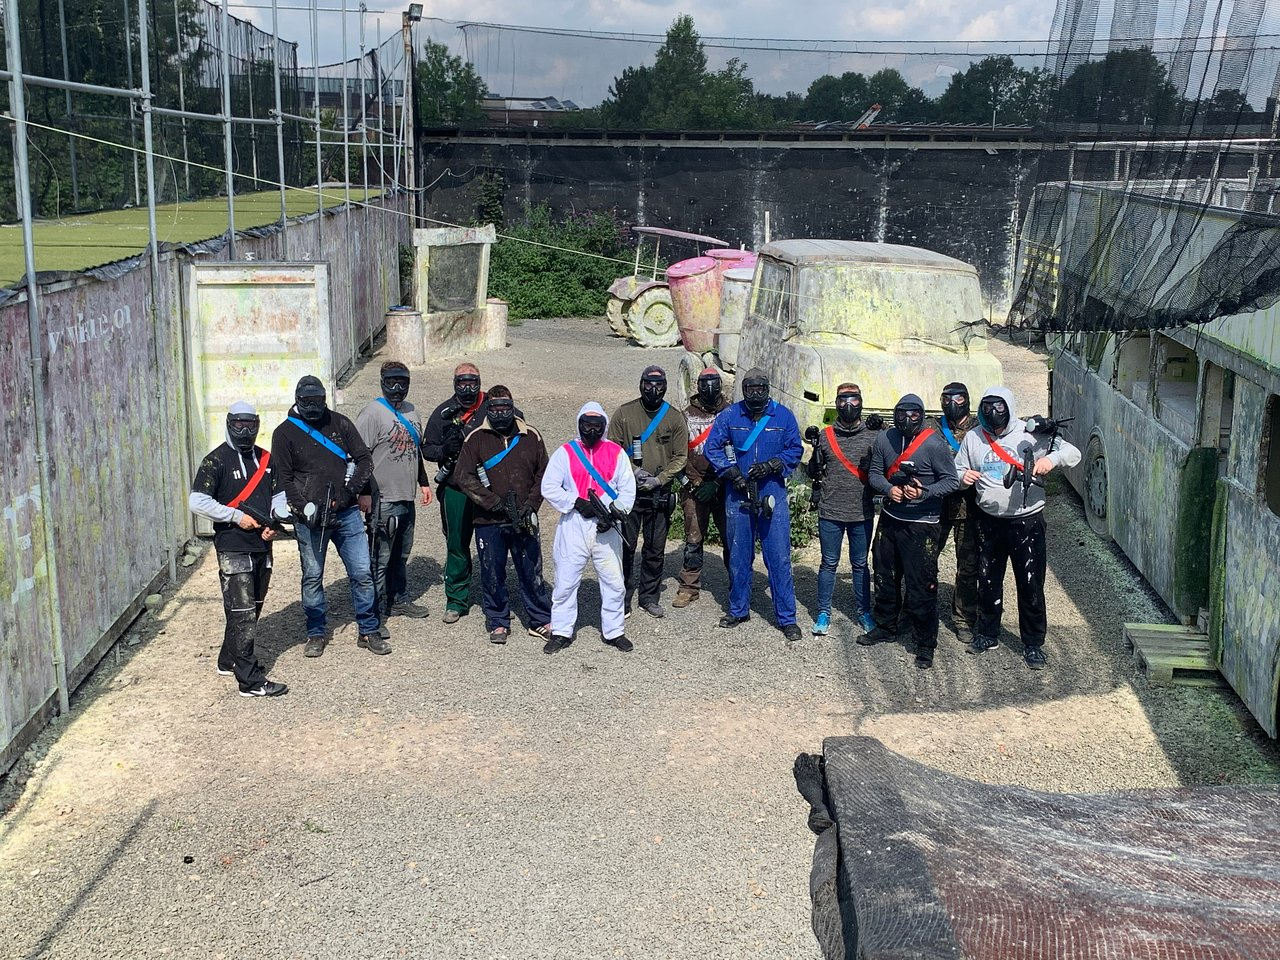 Playpaintball Lost City Monchengladbach 2020 All You Need To Know Before You Go With Photos Monchengladbach Germany Tripadvisor